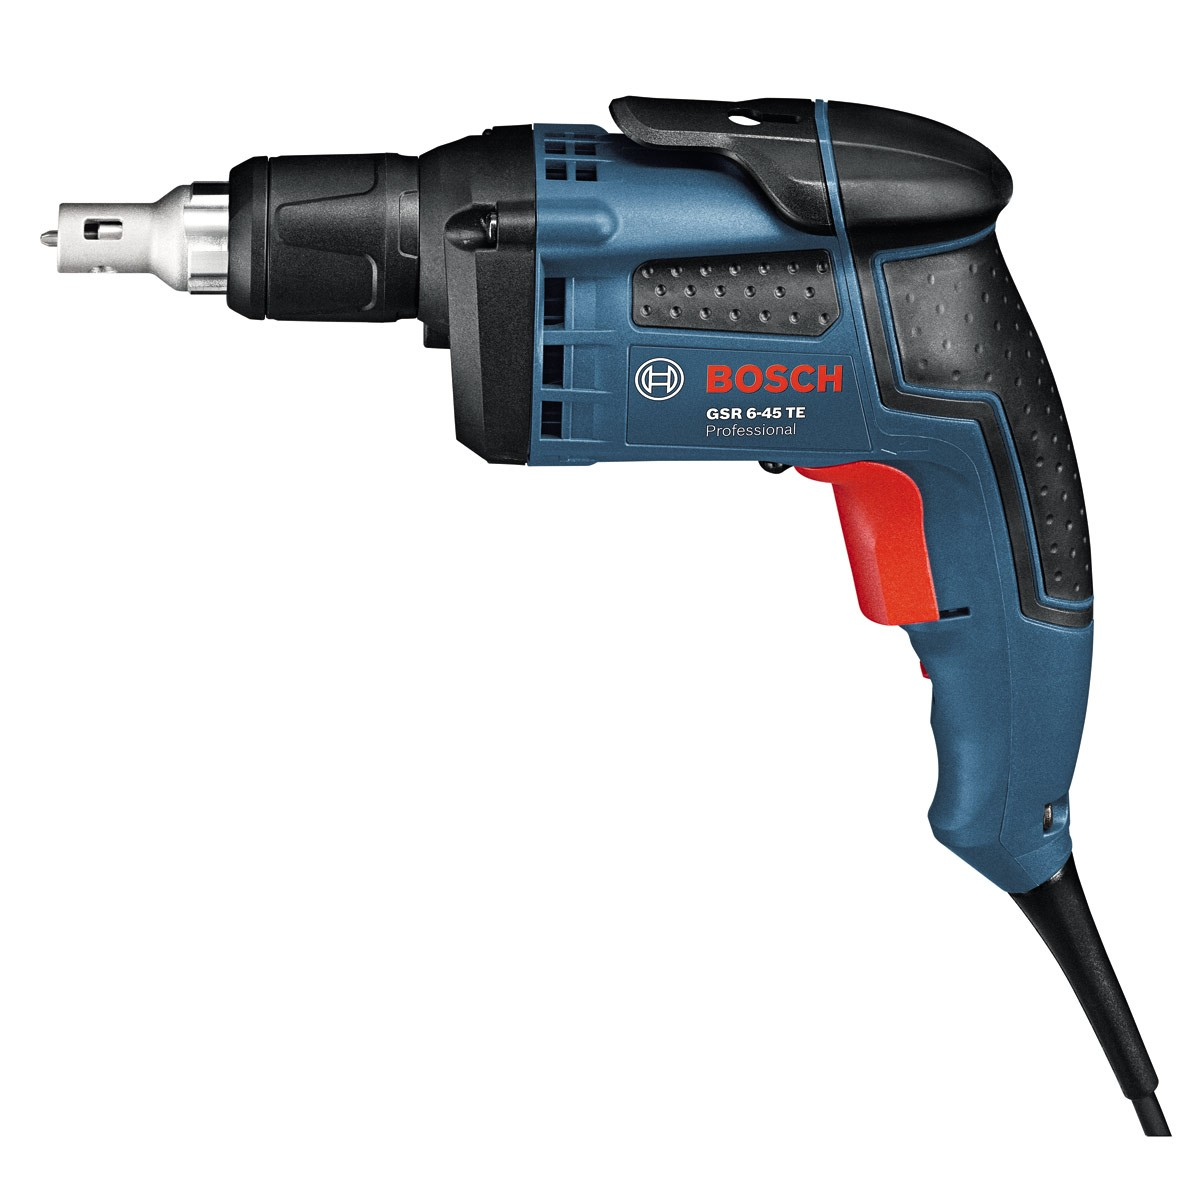 Bosch GSR 6 45 TE Professional Drywall Screwdriver